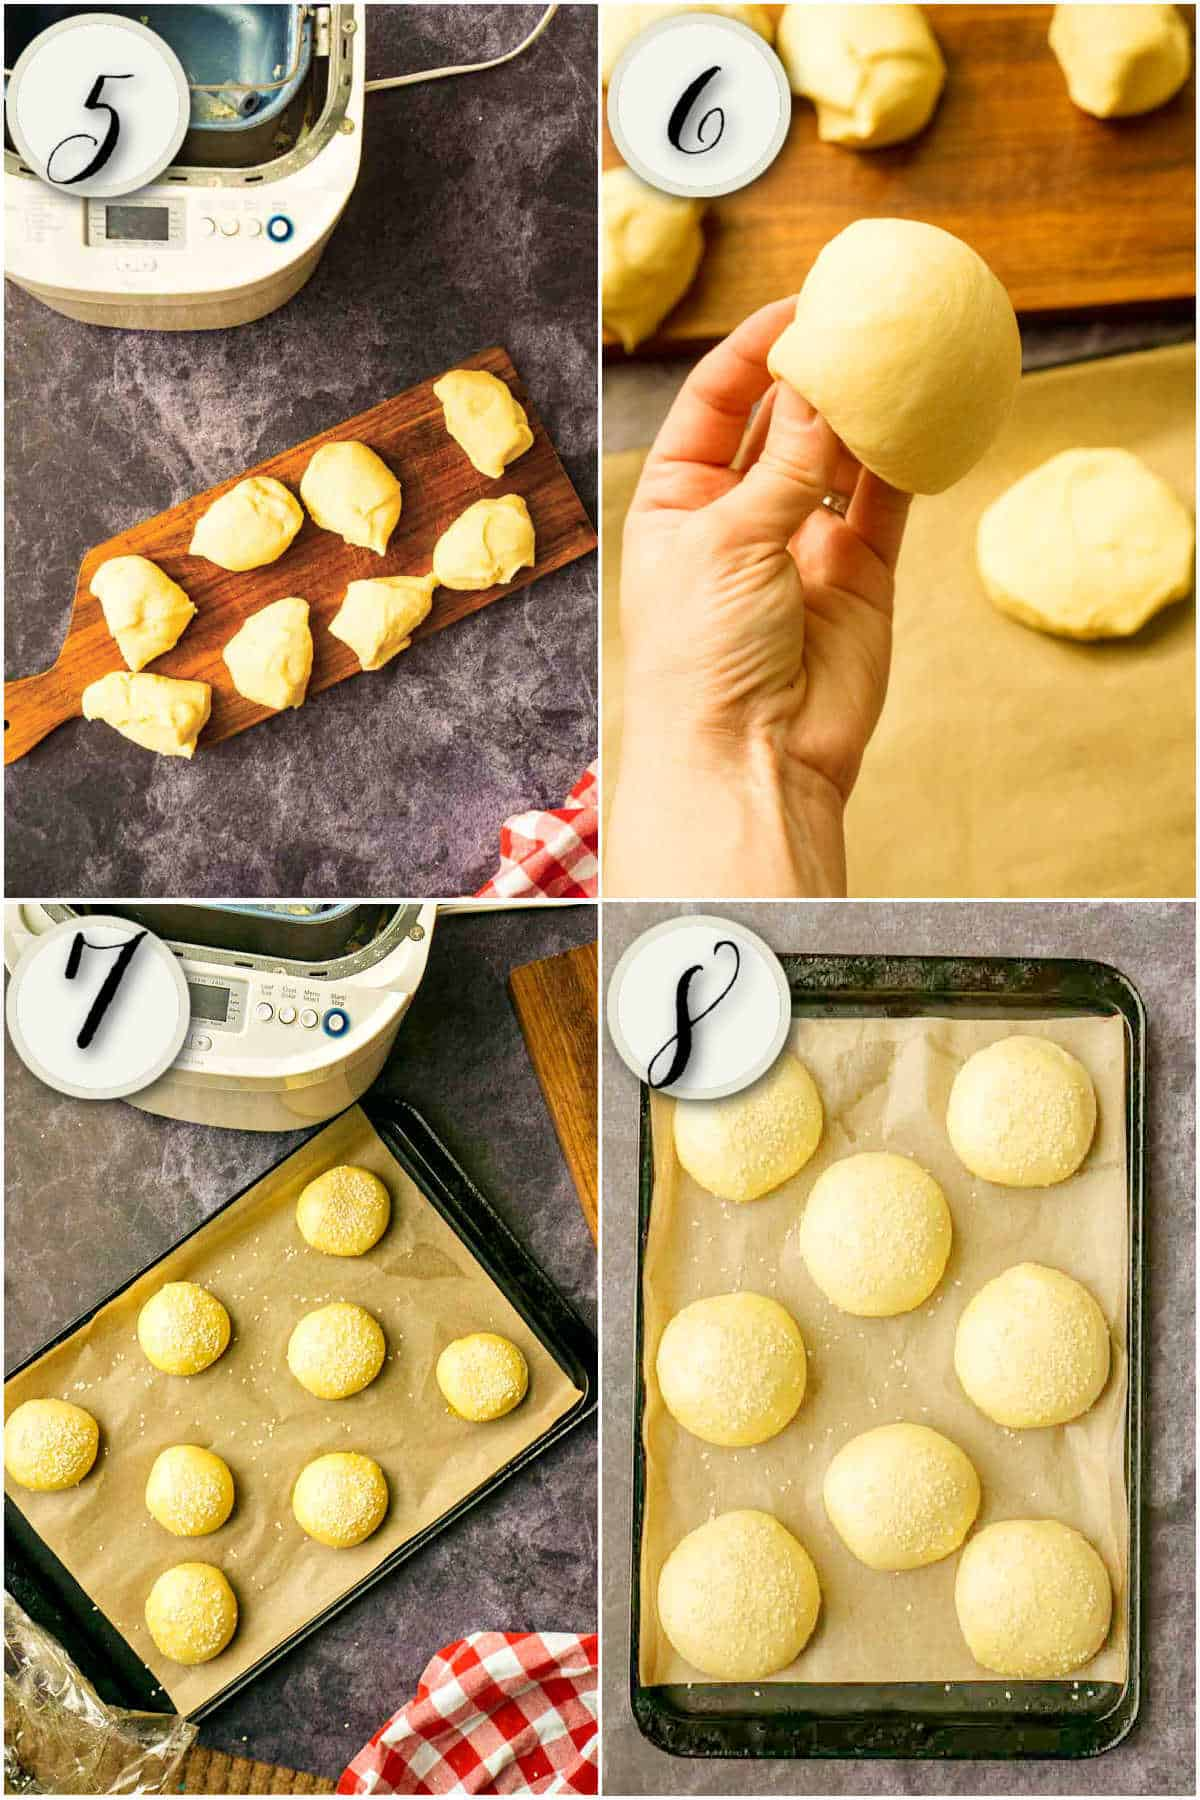 four images showing process of dividing, shaping, and rising buns